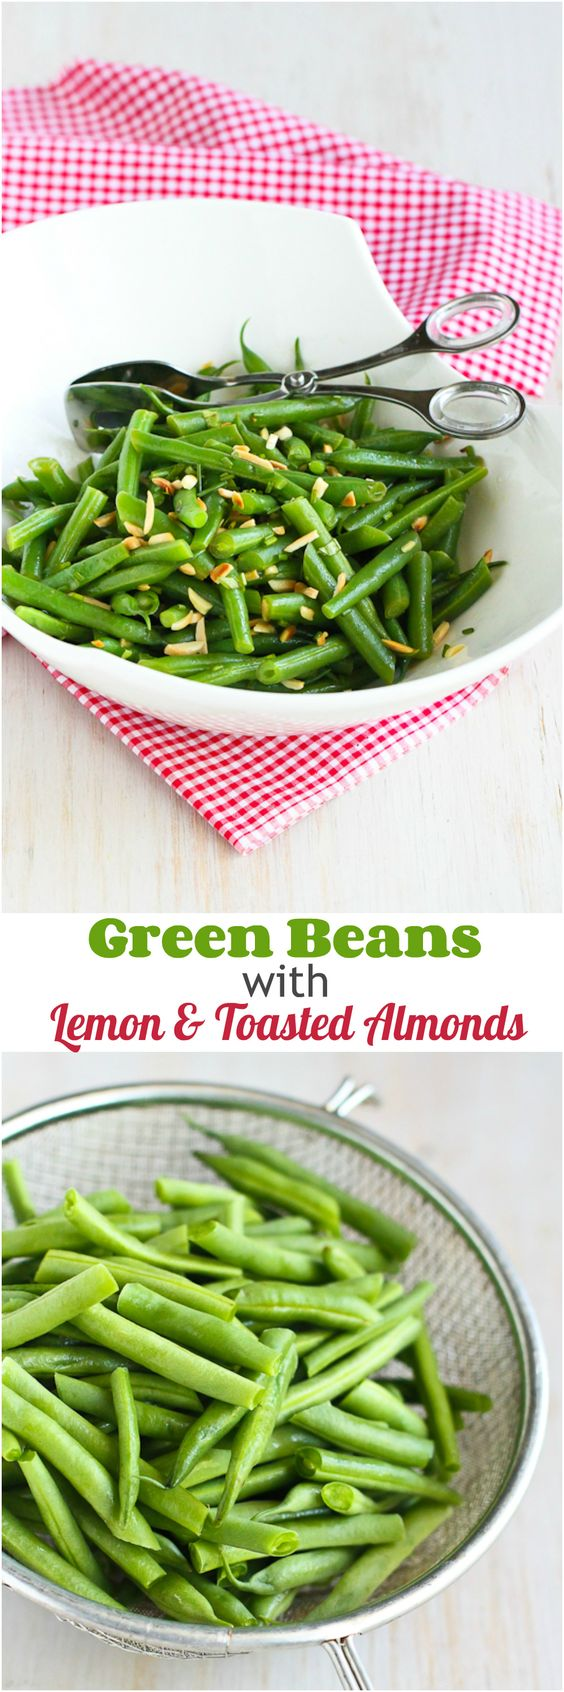 Green beans, Almonds and Beans on Pinterest